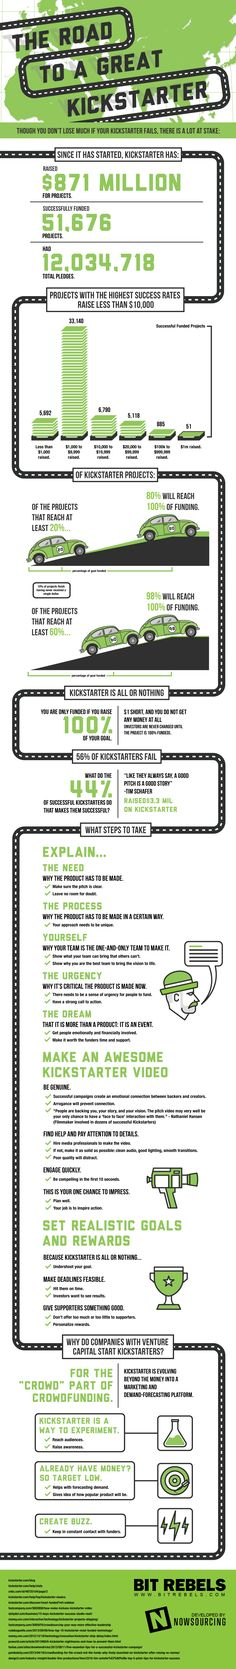 How To Setup A Successful Kickstarter Campaign. Infographic